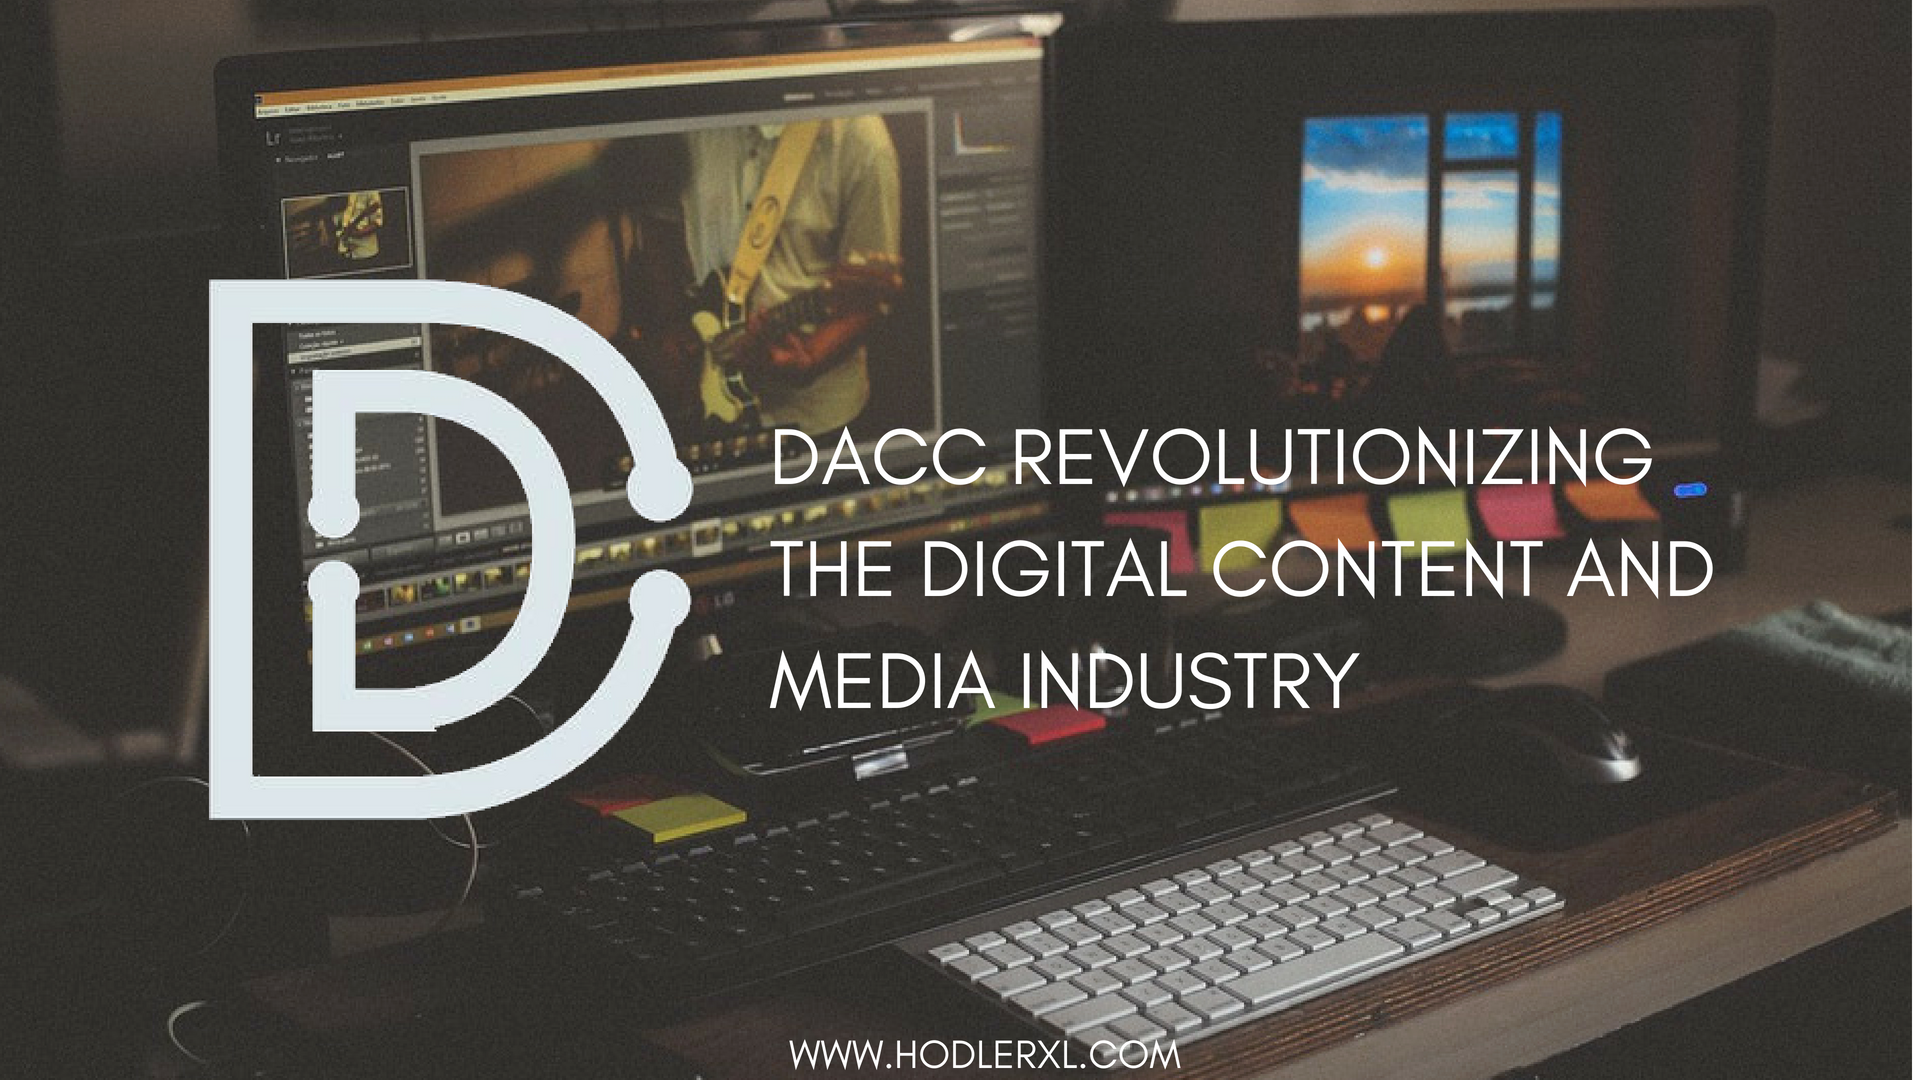 DACC REVOLUTIONIZING THE DIGITAL CONTENT AND MEDIA INDUSTRY (1)